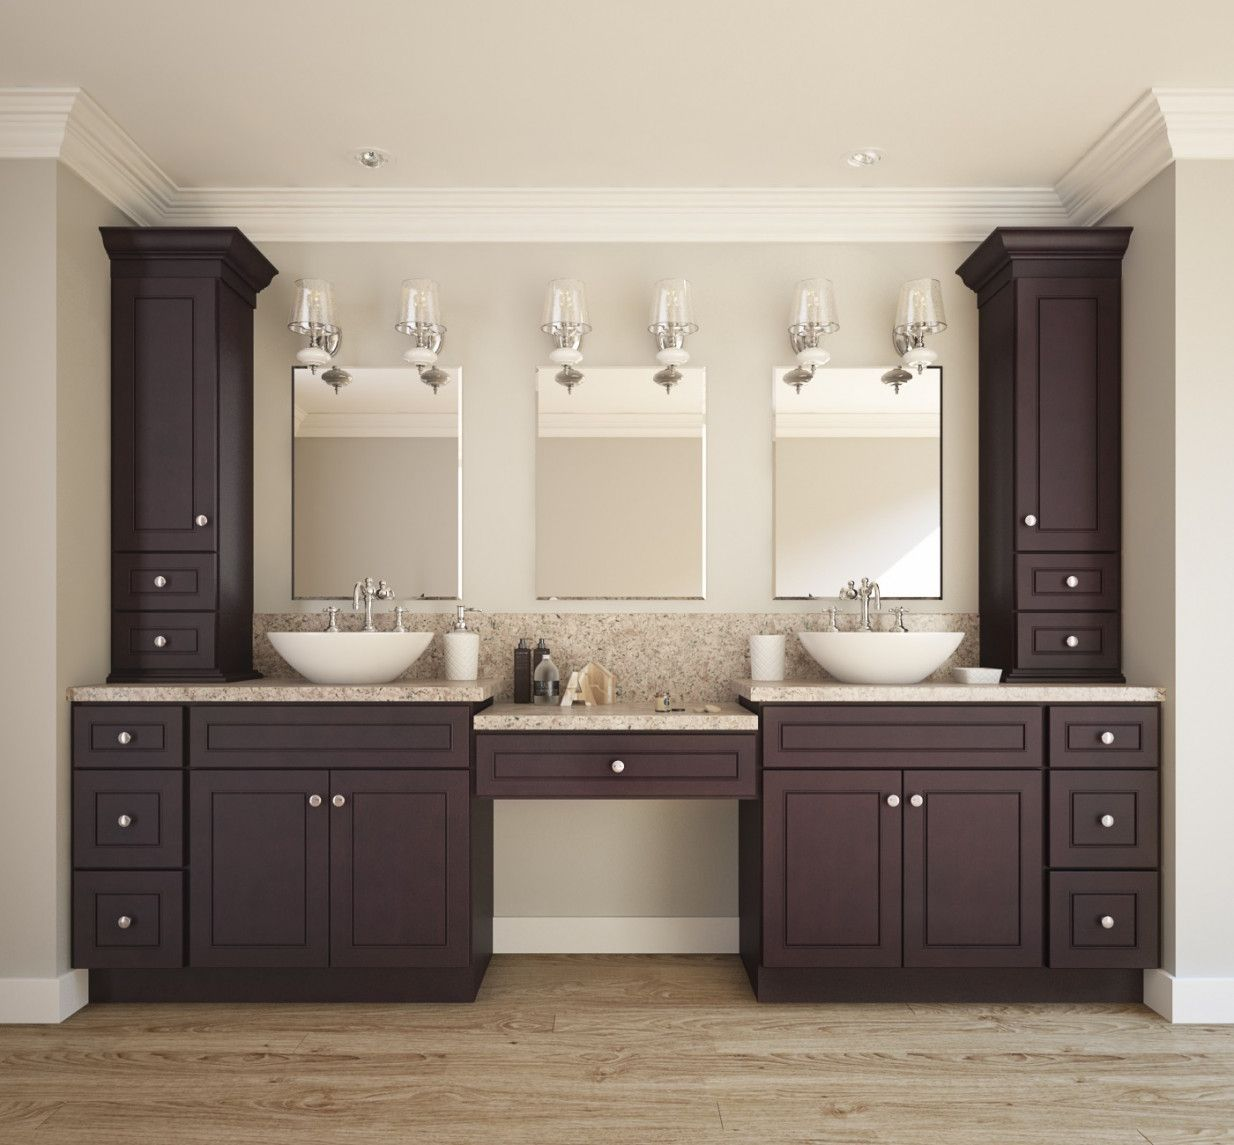 70+ Rta Bathroom Vanity Cabinet - Interior Paint Color Ideas Check ...